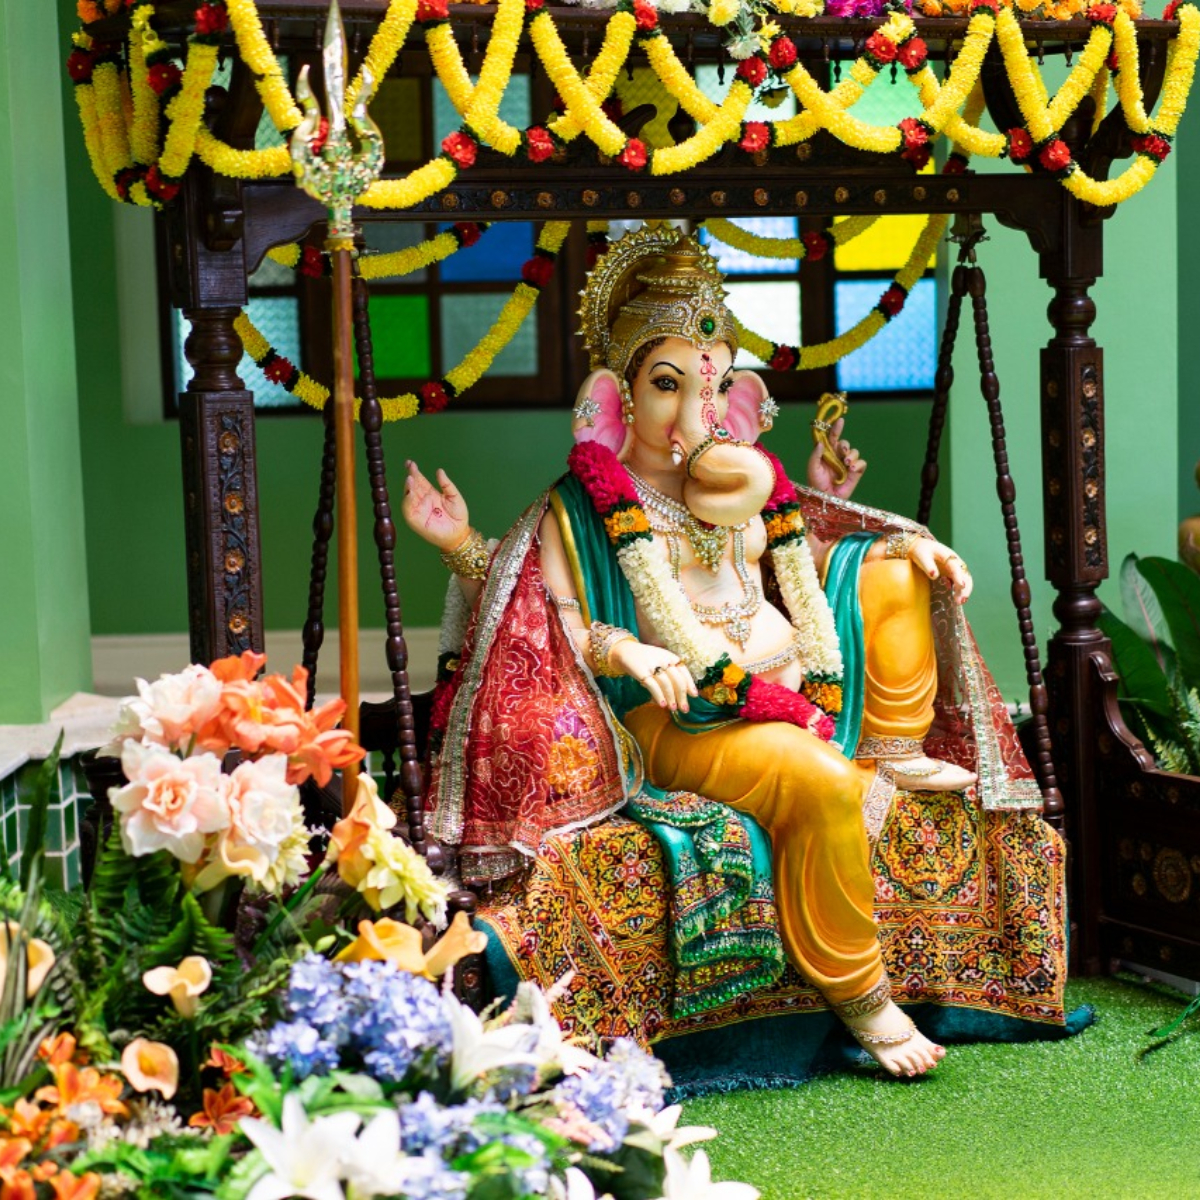 8 Décor ideas to brighten up your abode this Ganesh Chaturthi